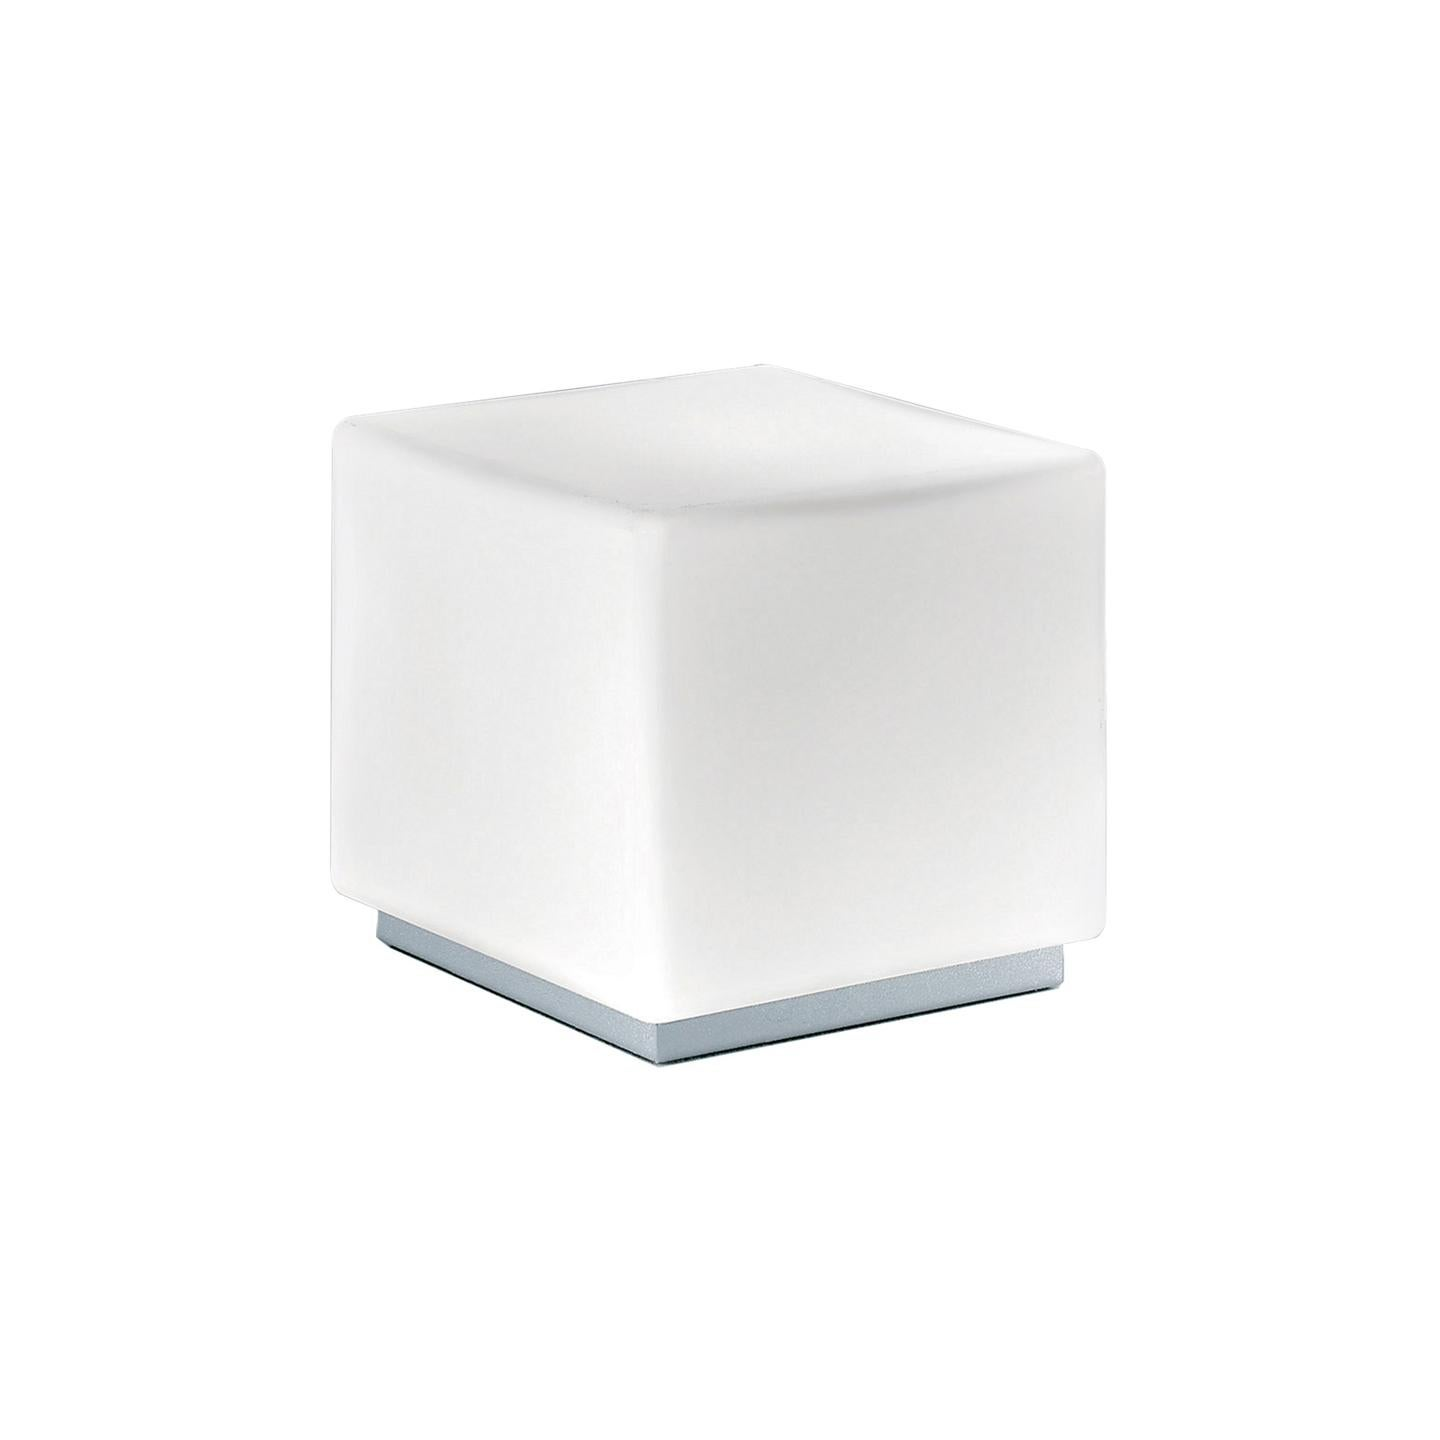 Leucos Cubi T 11 Table Light in Satin White & Gray by Design Lab